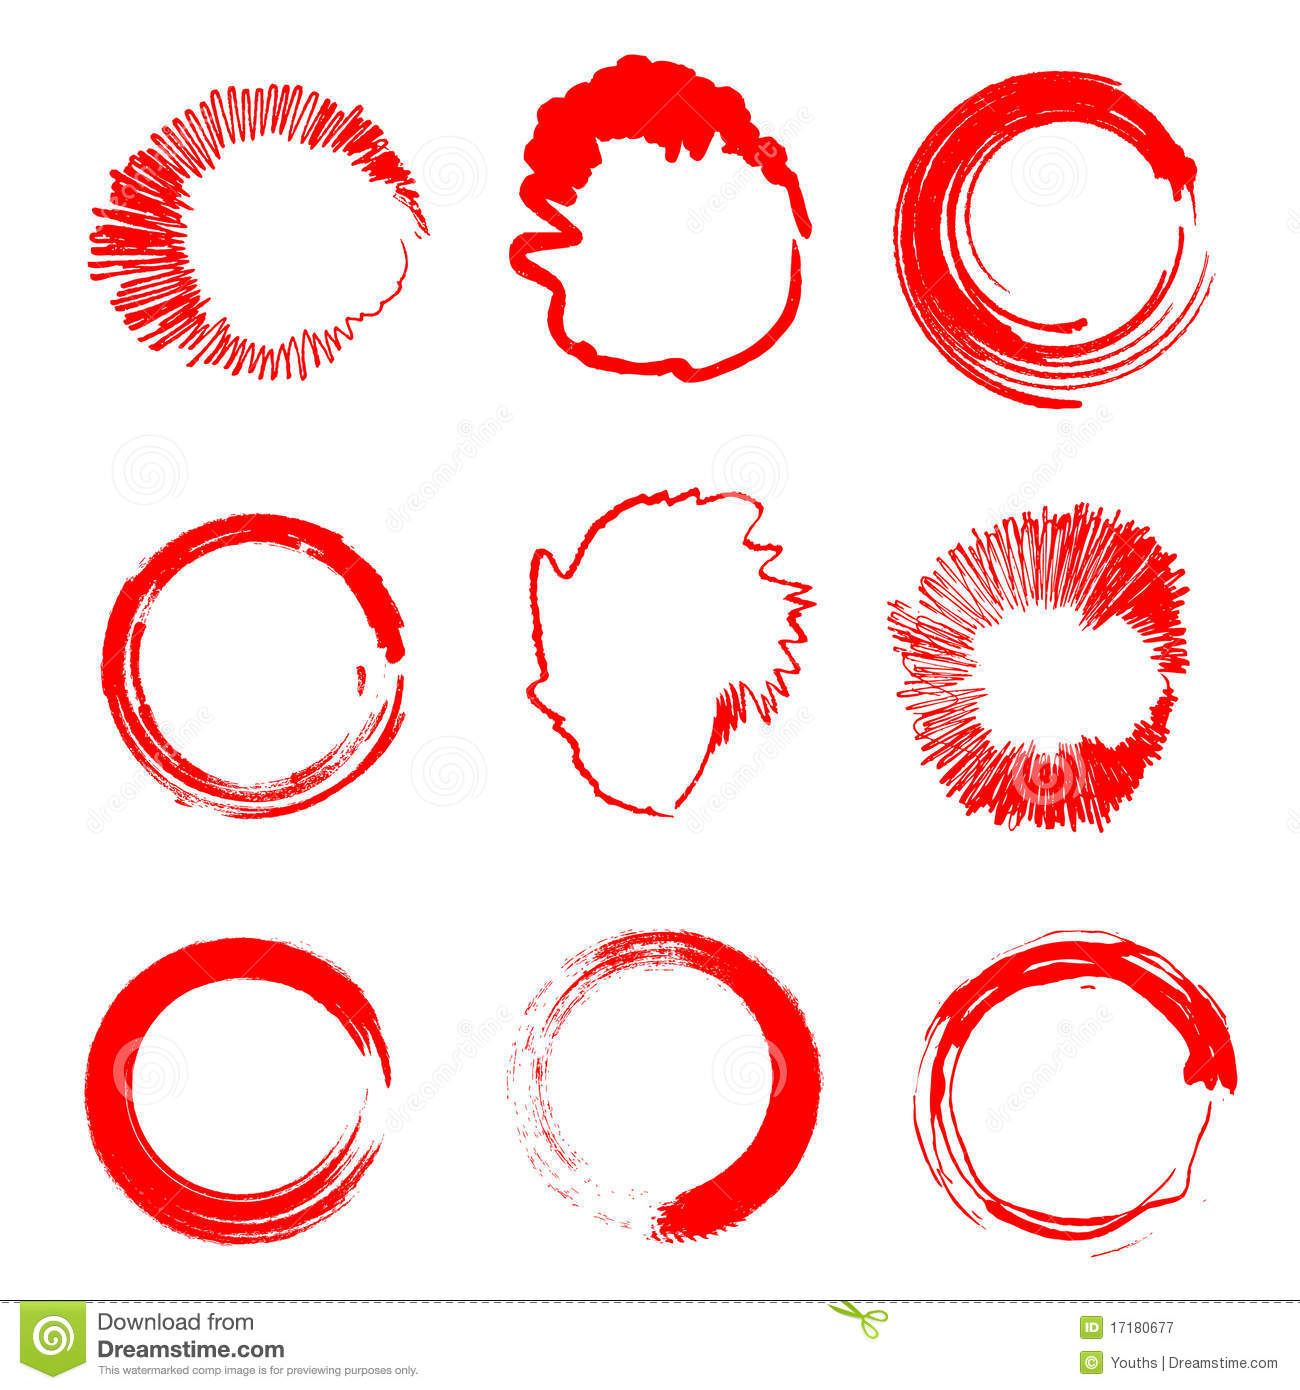 Grunge circle stains (Vector)